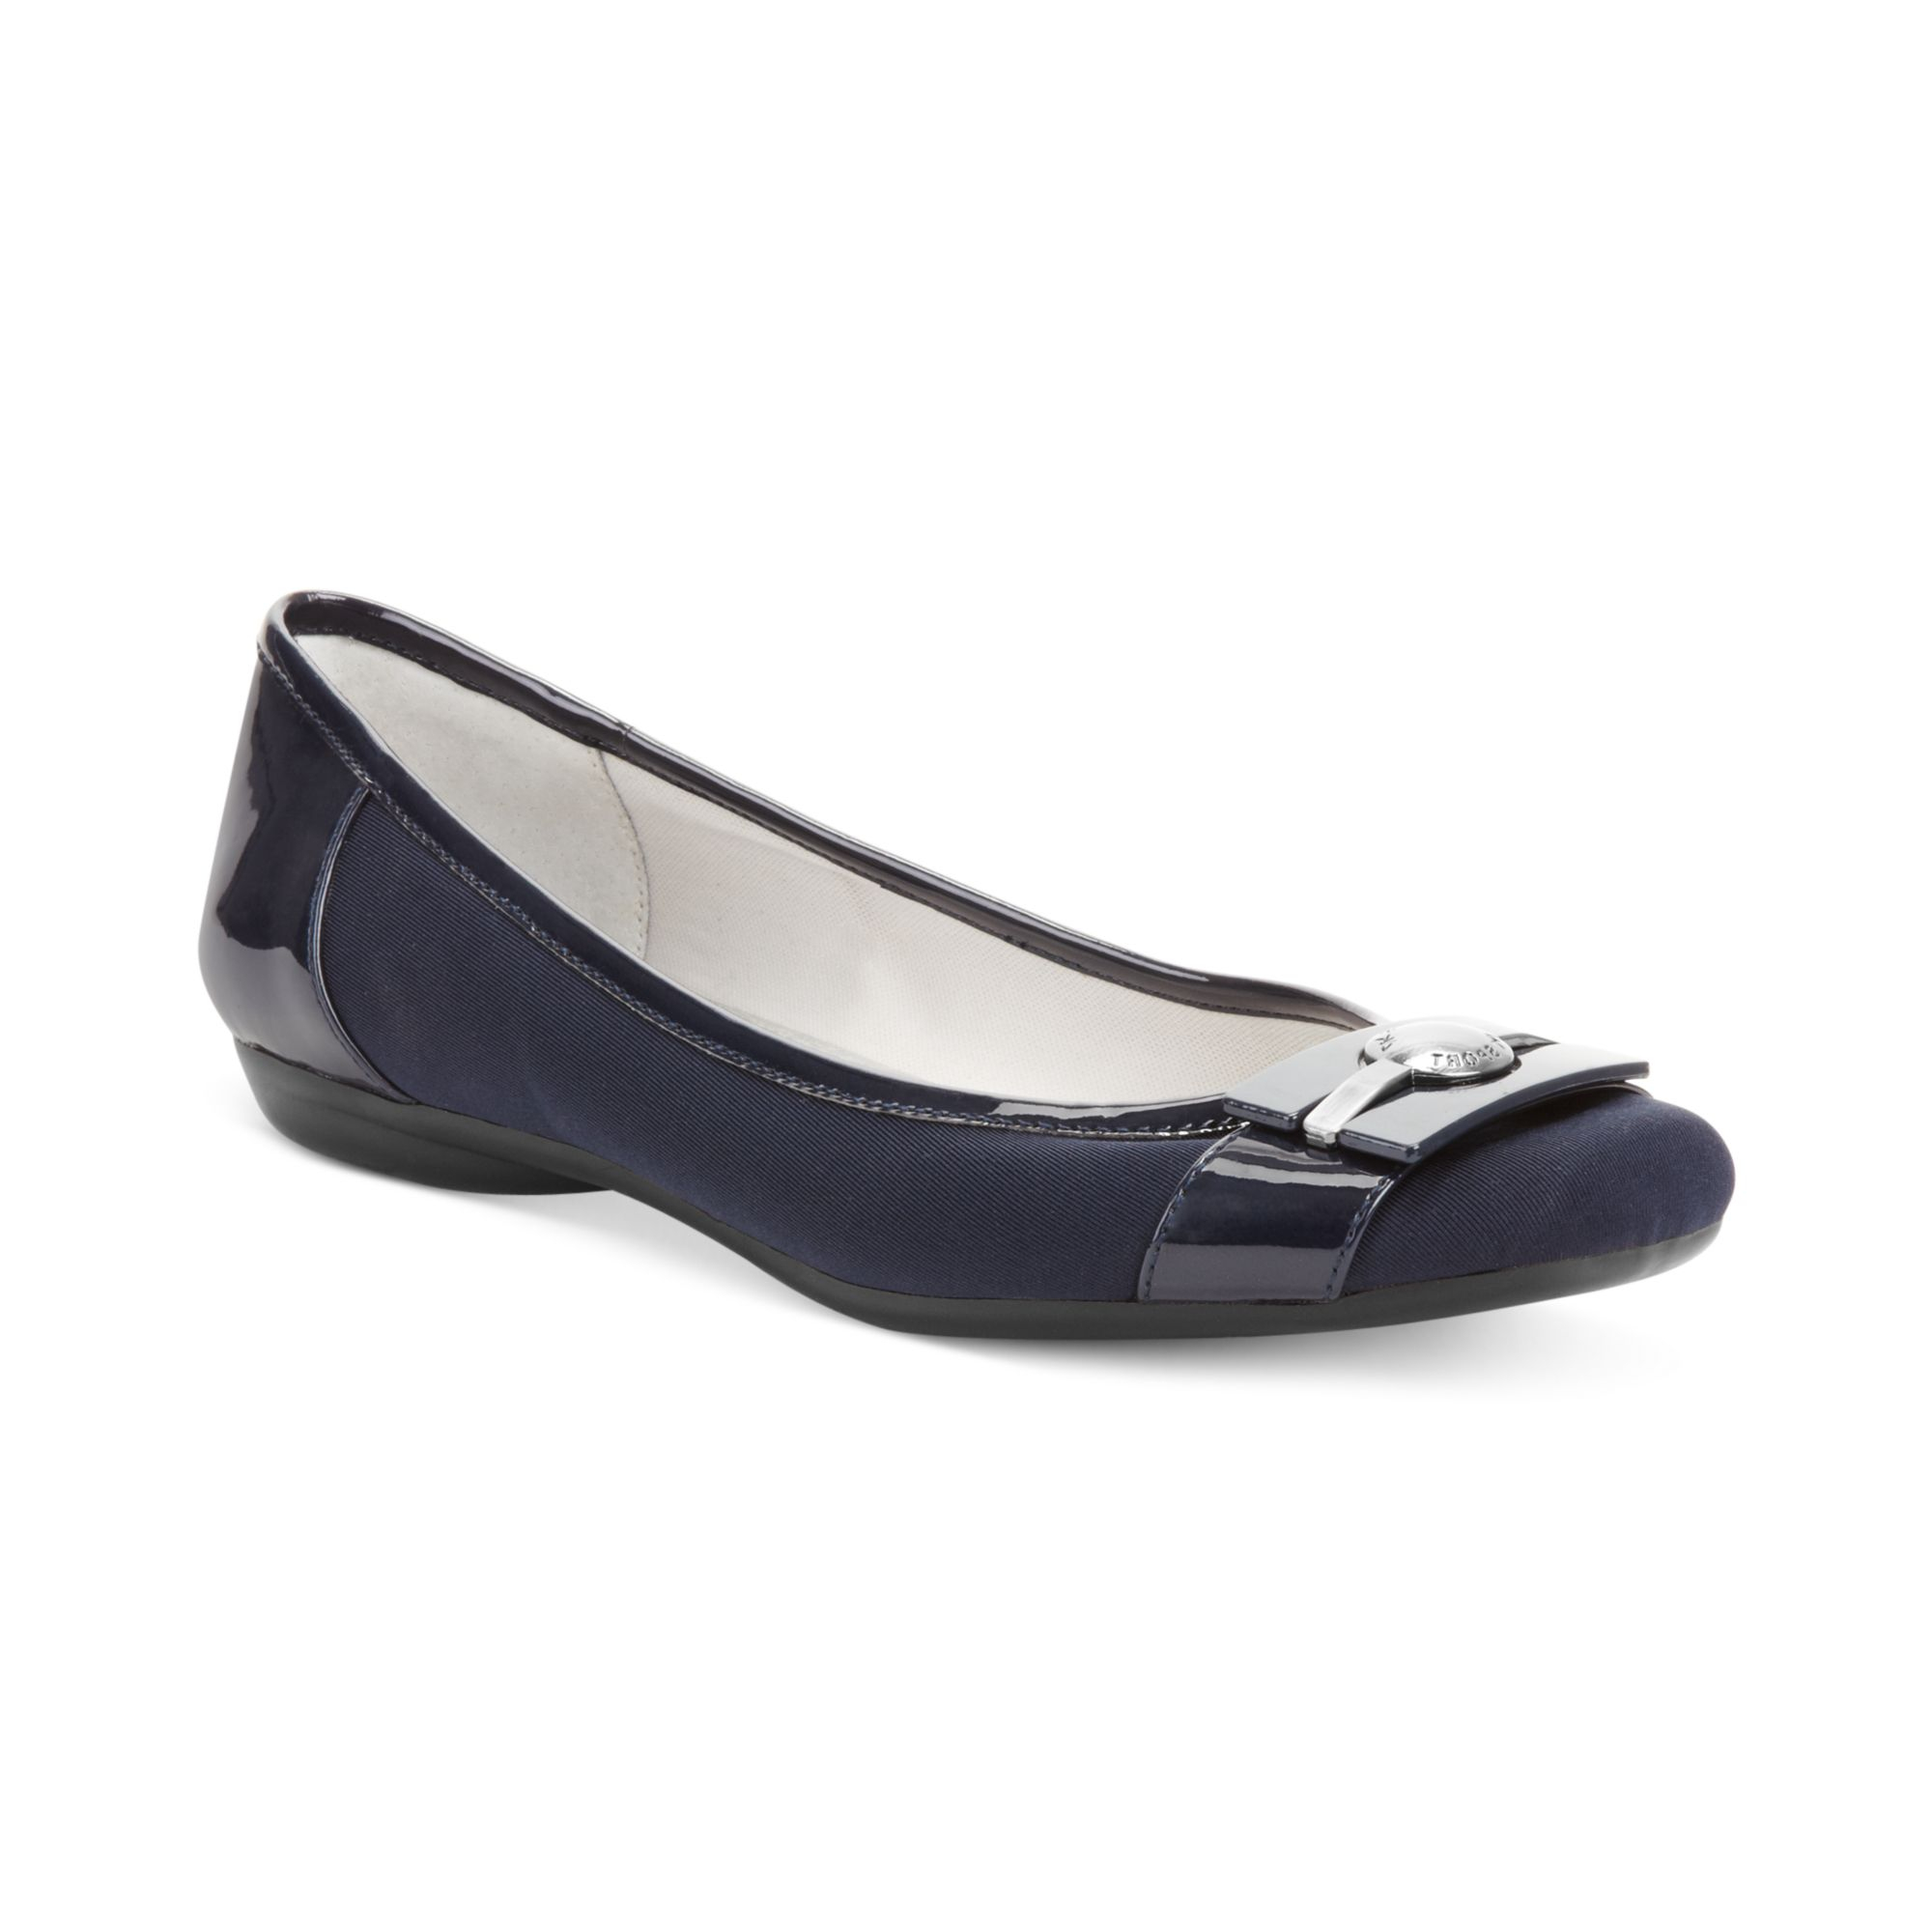 Anne Klein Flat Shoes